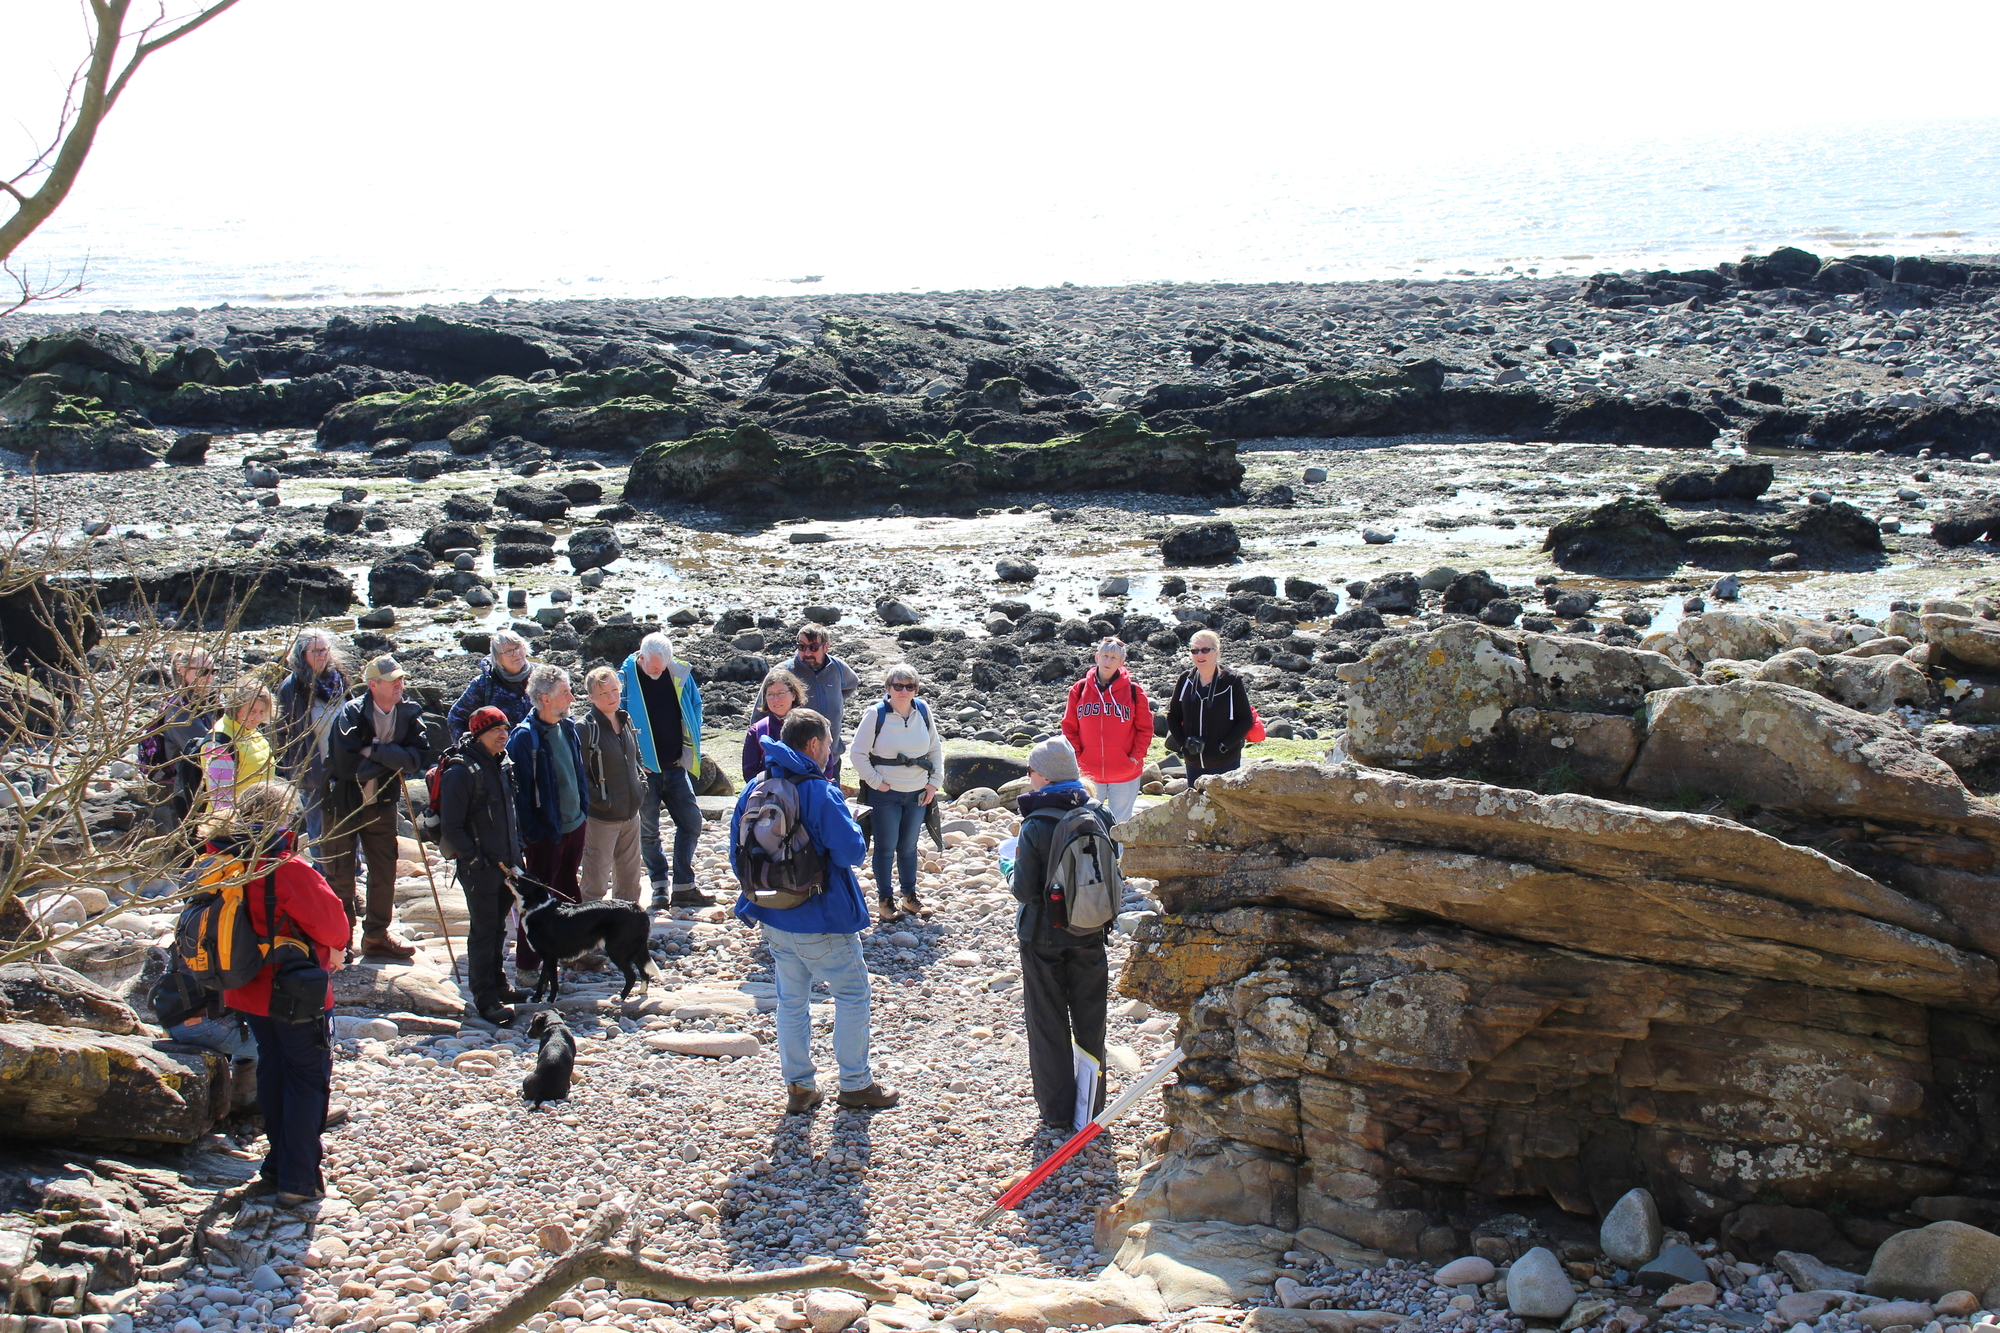 A large group of people standing talking on a rocky beach with the sea in the background